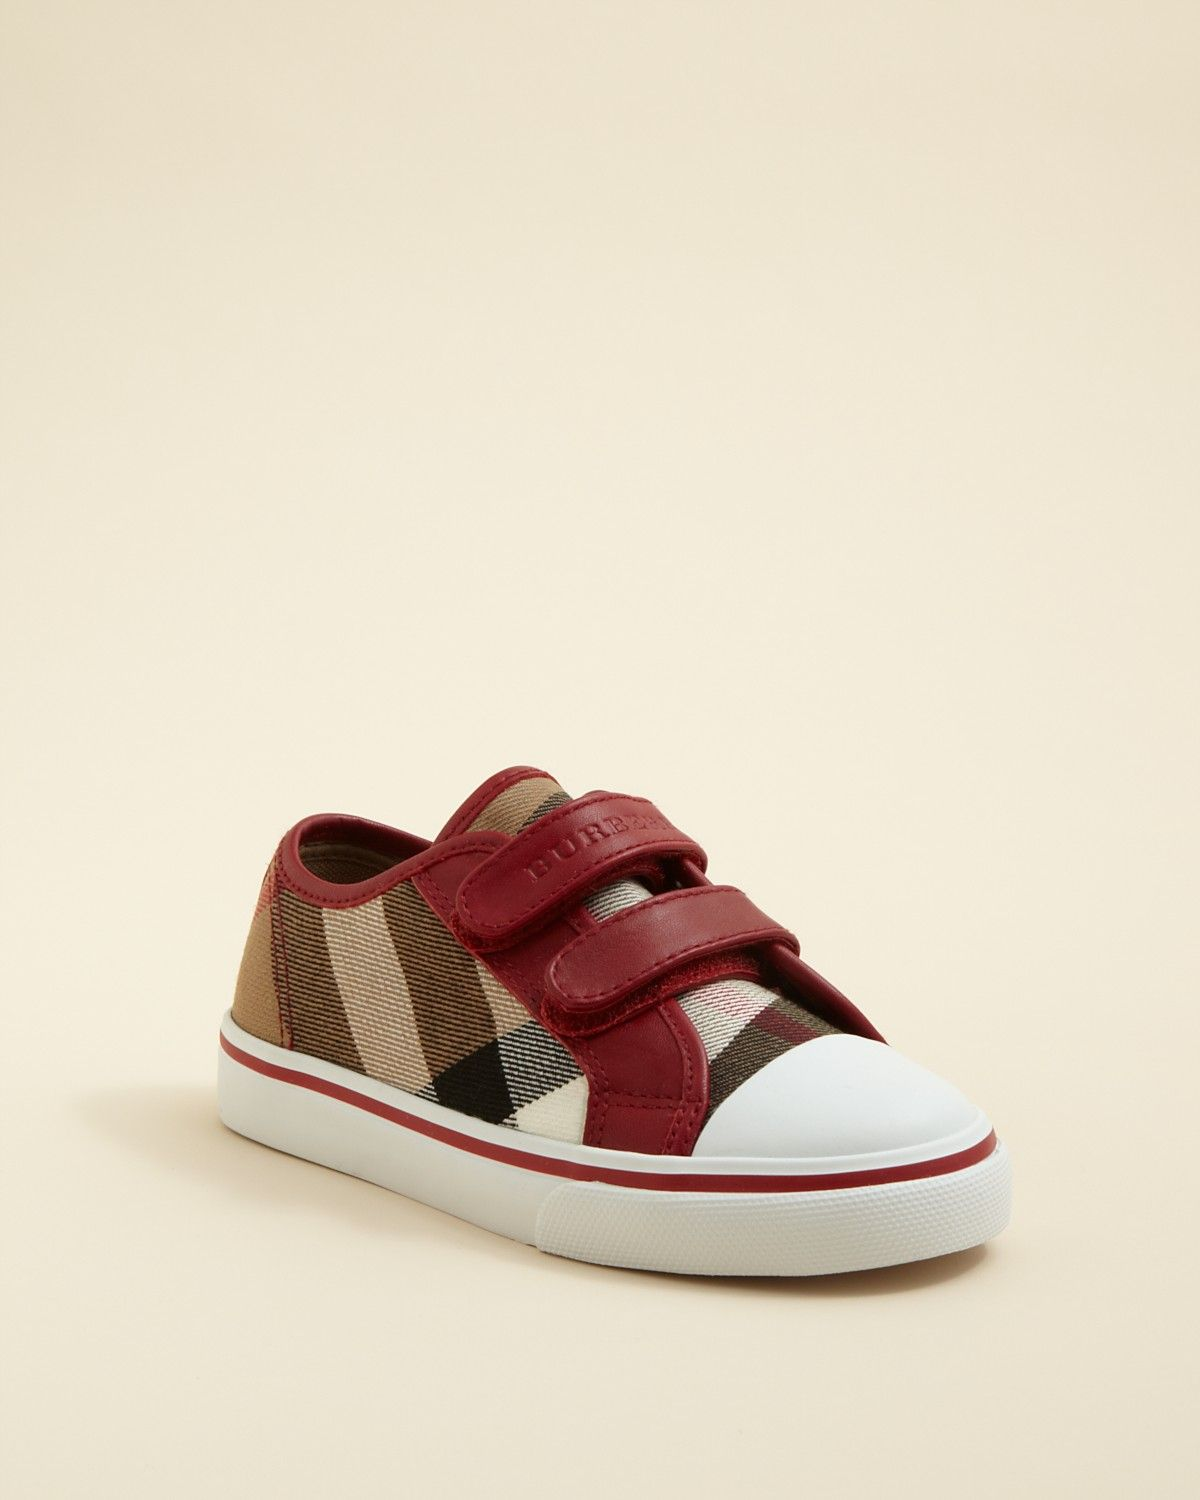 bloomingdales burberry sneakers